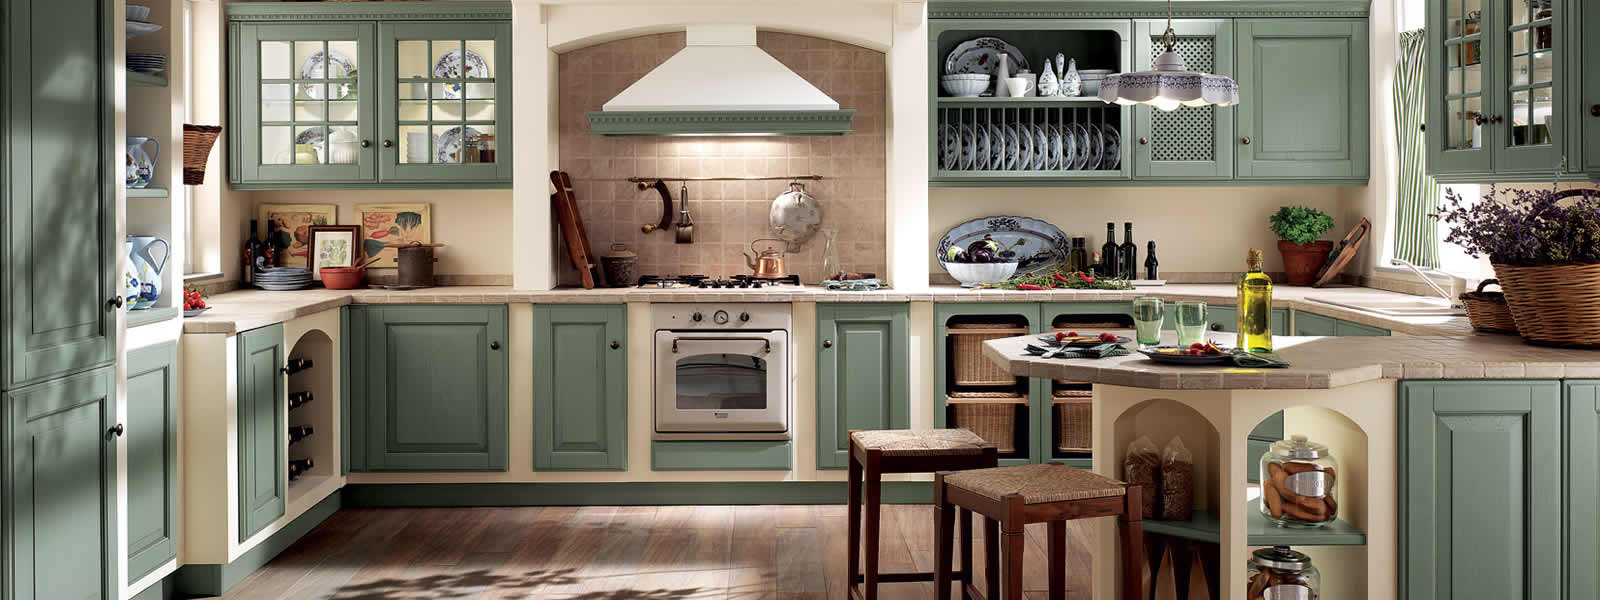 Emejing Cucina Country Provenzale Pictures - Home Interior Ideas ...